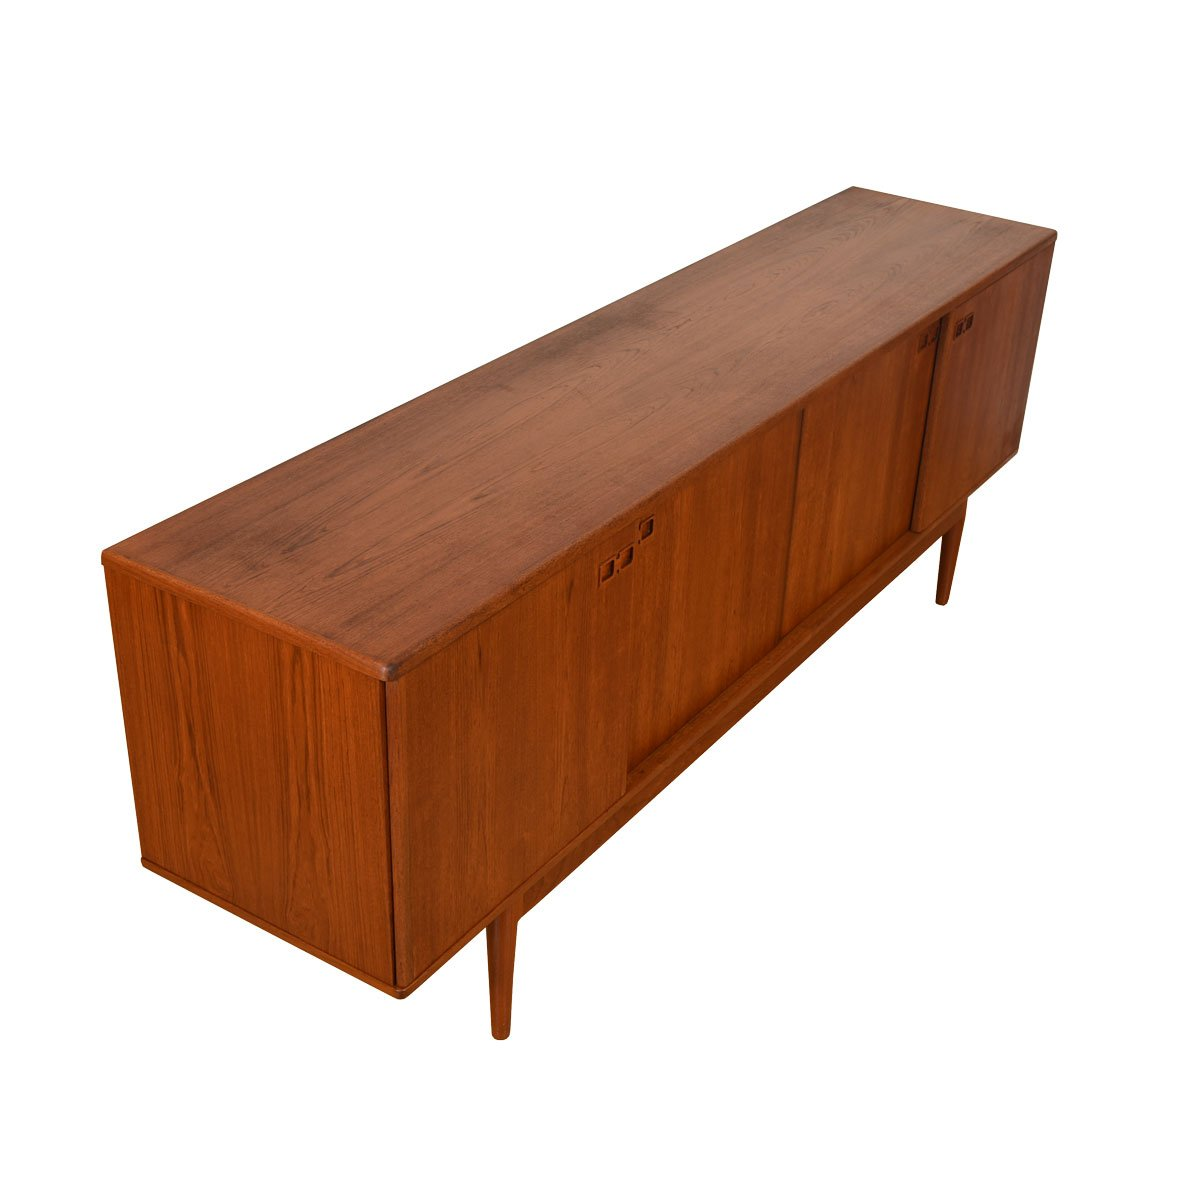 Kai Kristiansen Long & Sleek Danish Modern Teak Sideboard